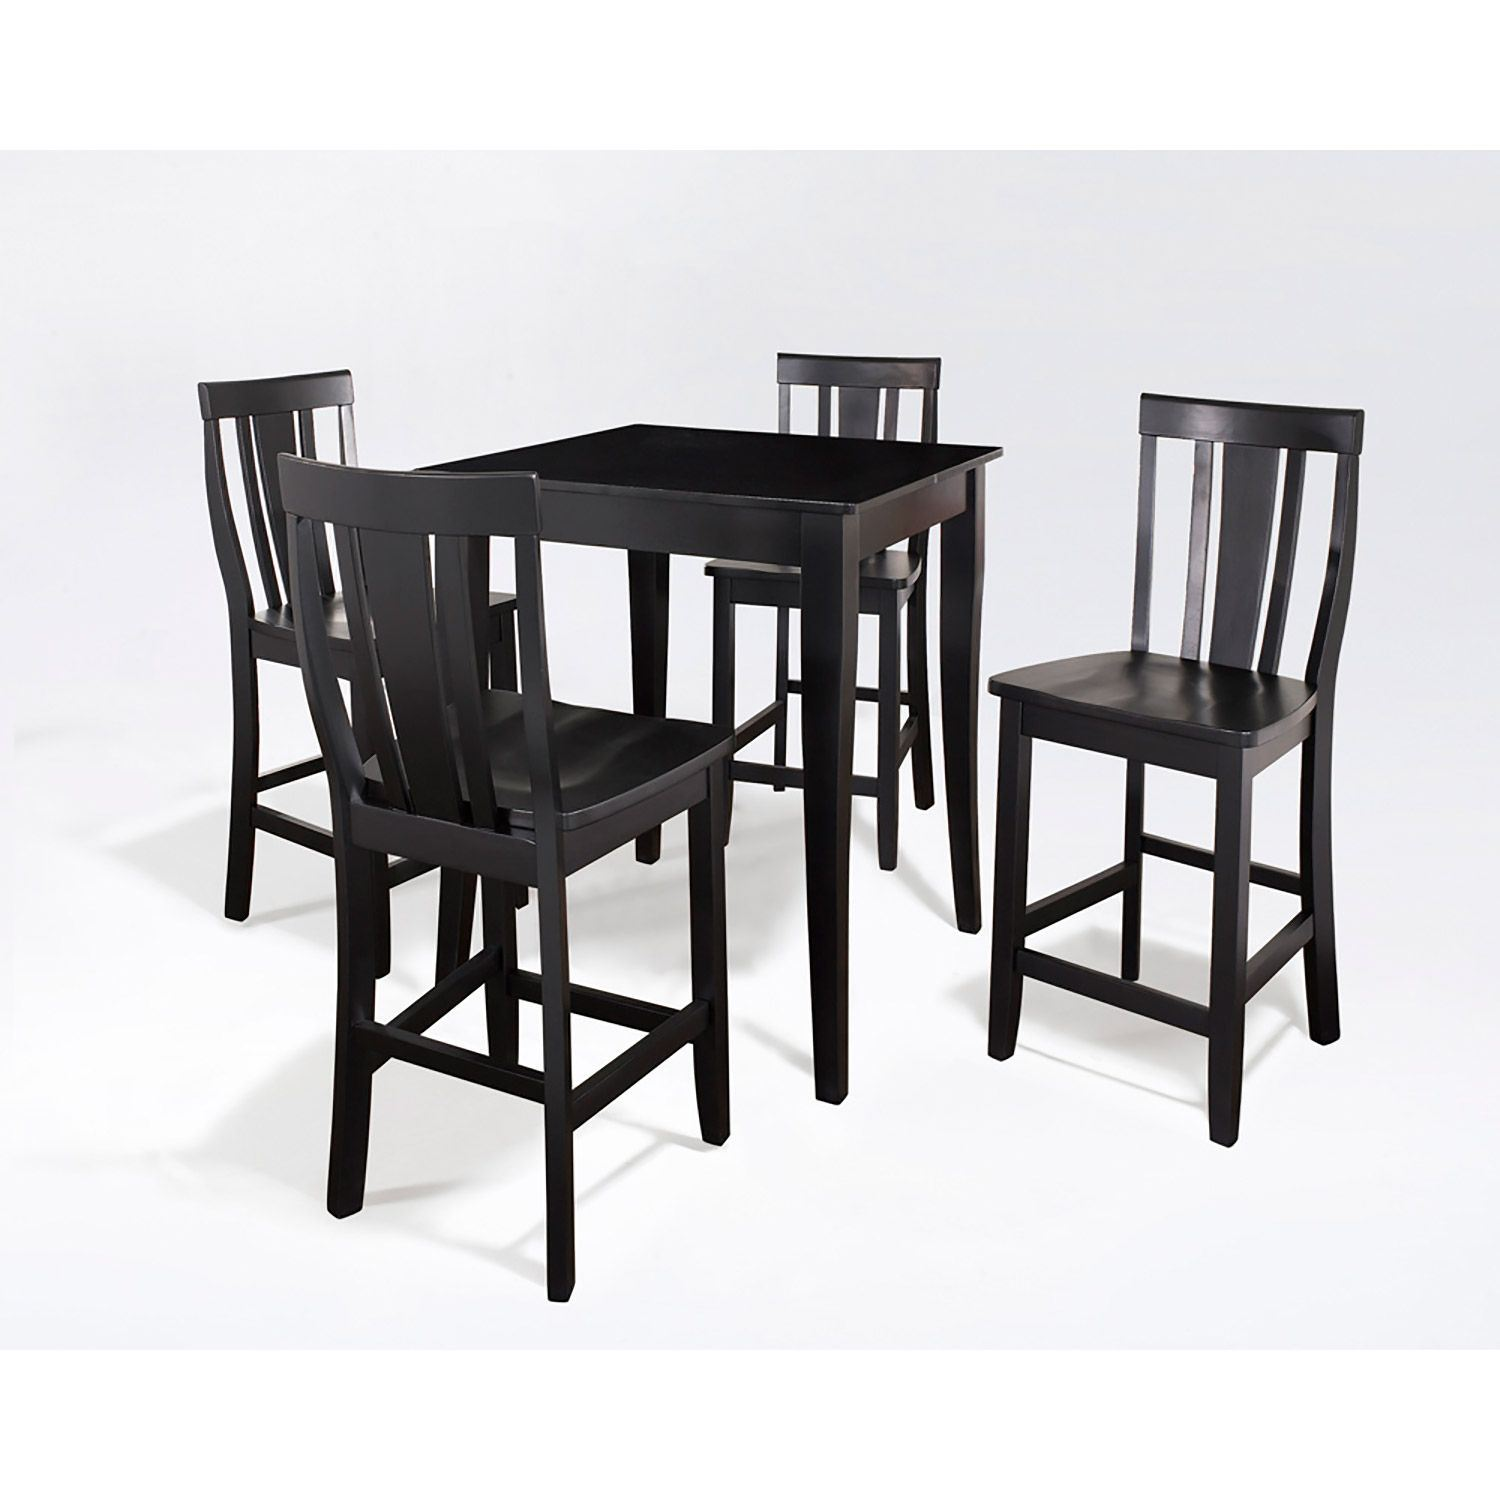 5 Piece Pub Dining Set Black D Kd520002bk Crosley